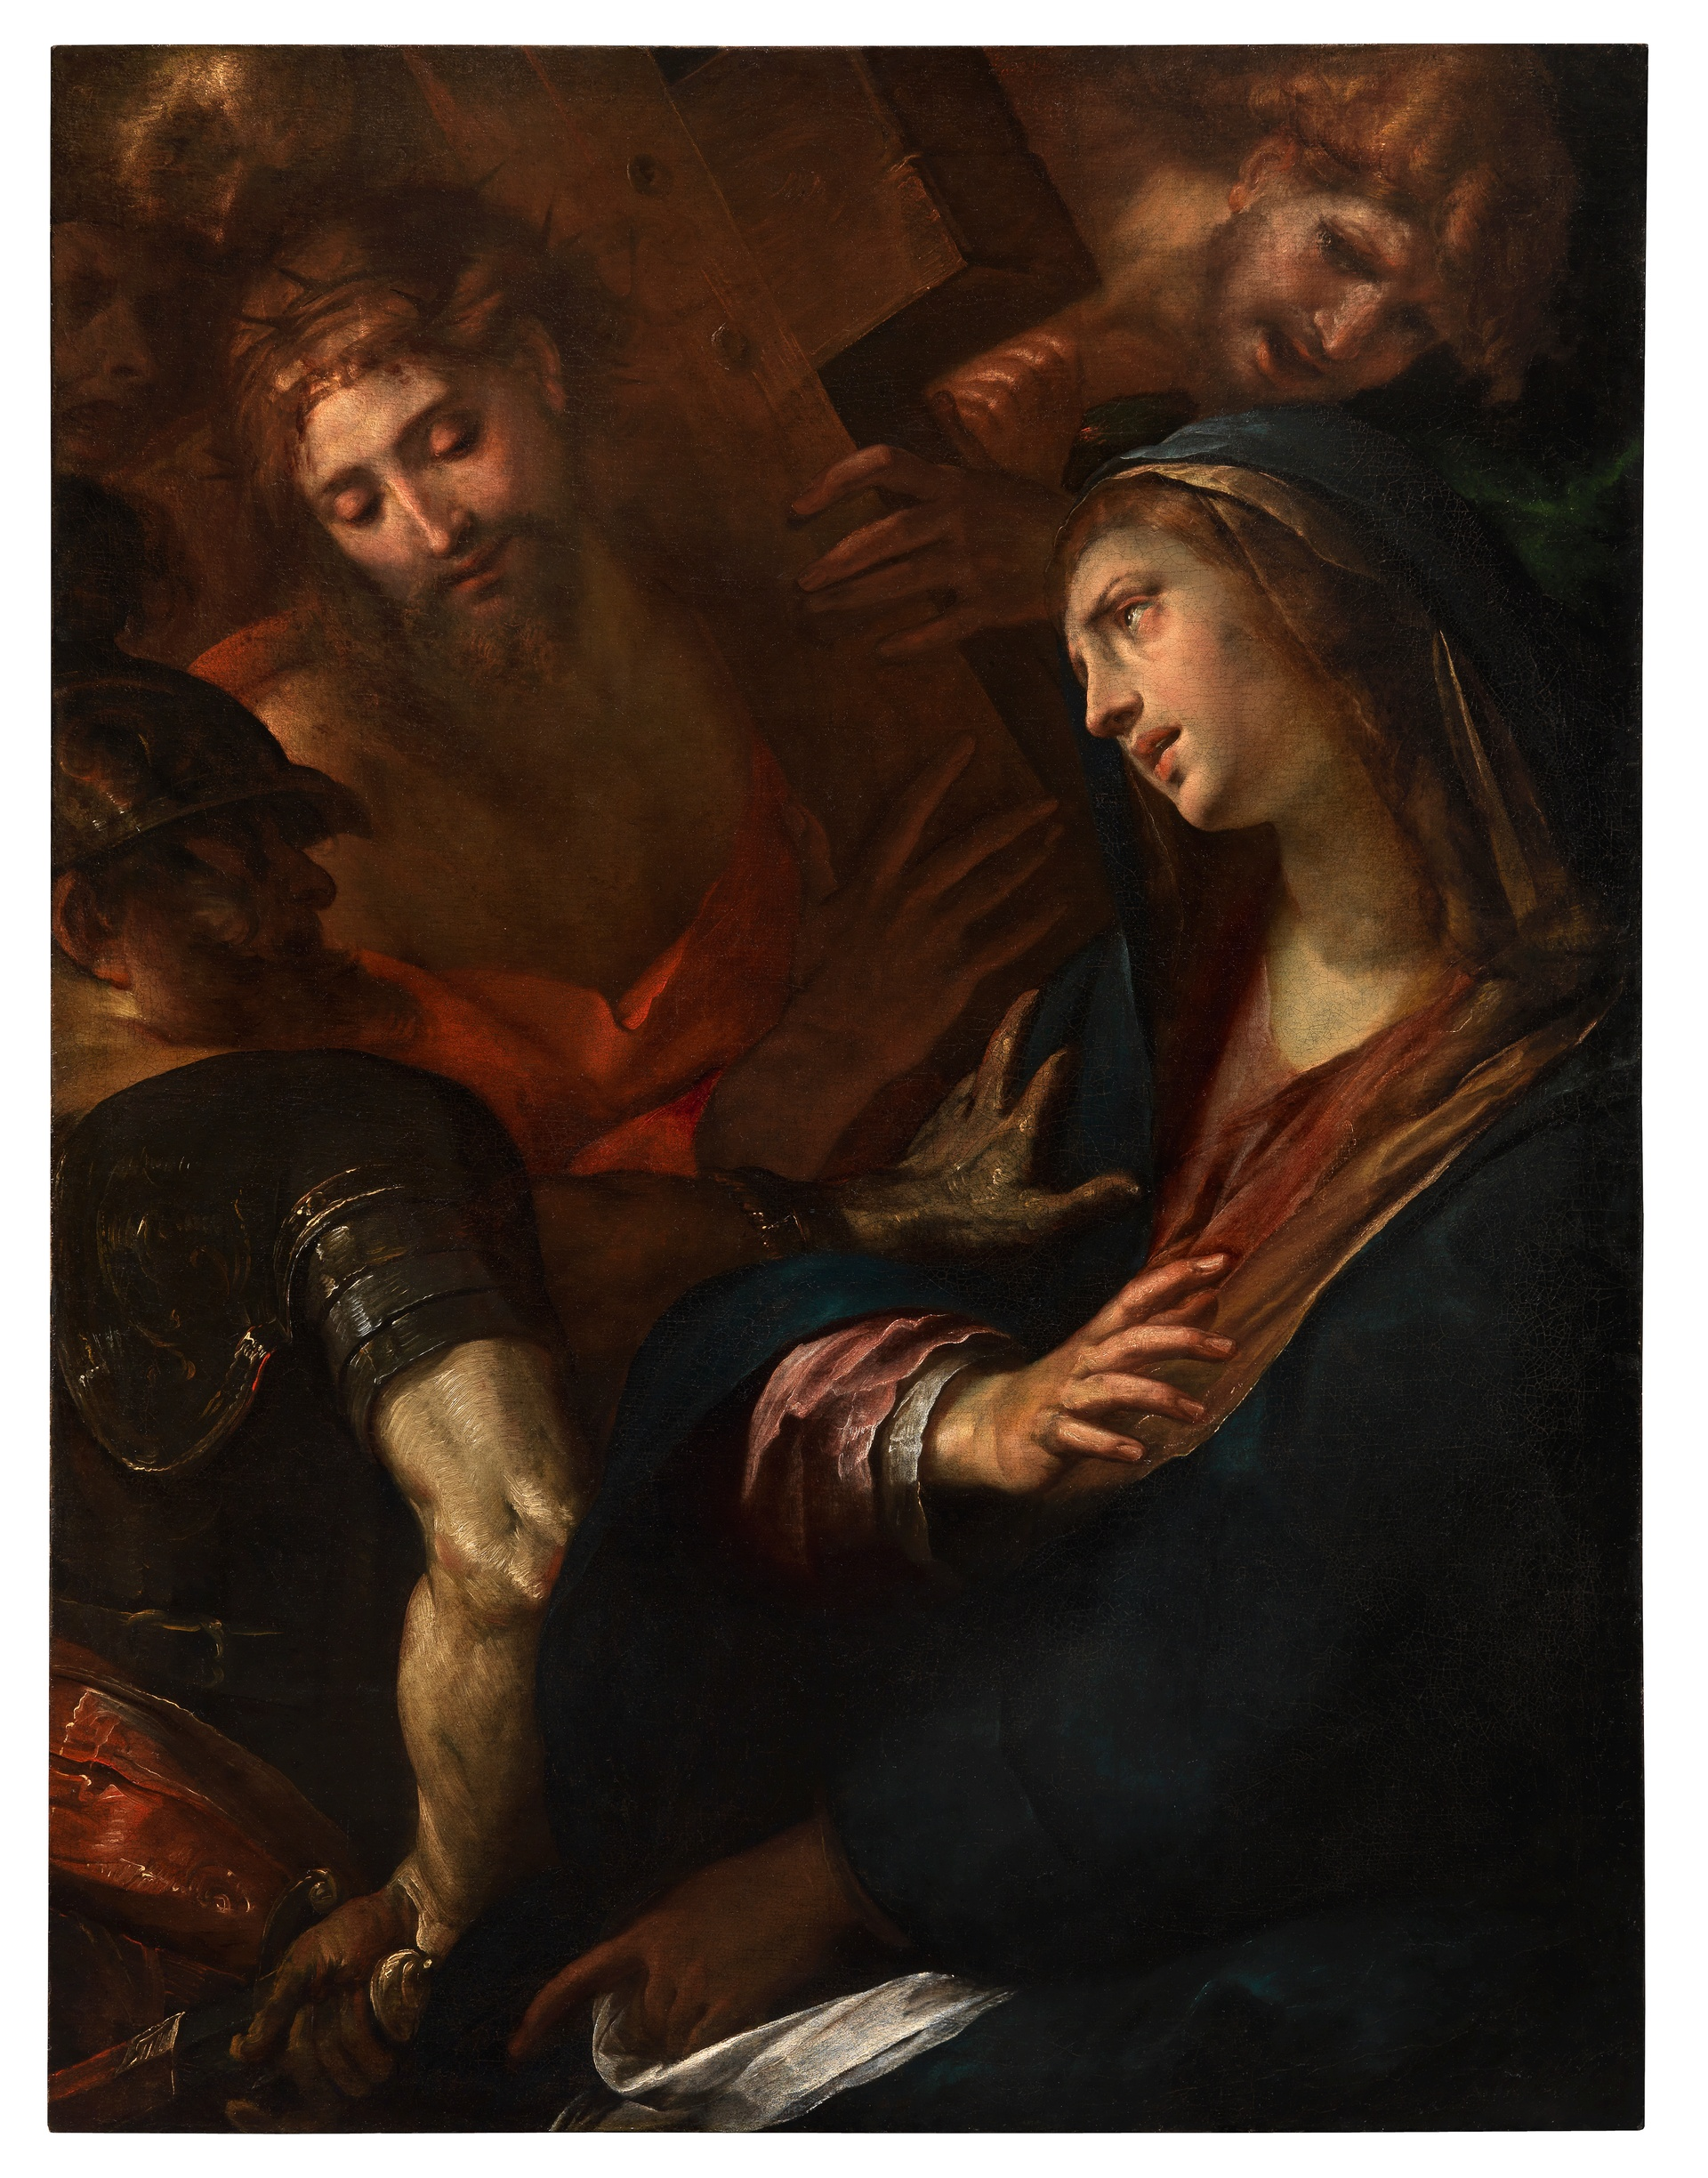 1242_Giulio-Cesare-Procaccini_Mary-and-Jesus-meet-on-the-road-to-Calvary_Oil-on-canvas_145.2-x-109-cm.-57¼-x-43-in._small